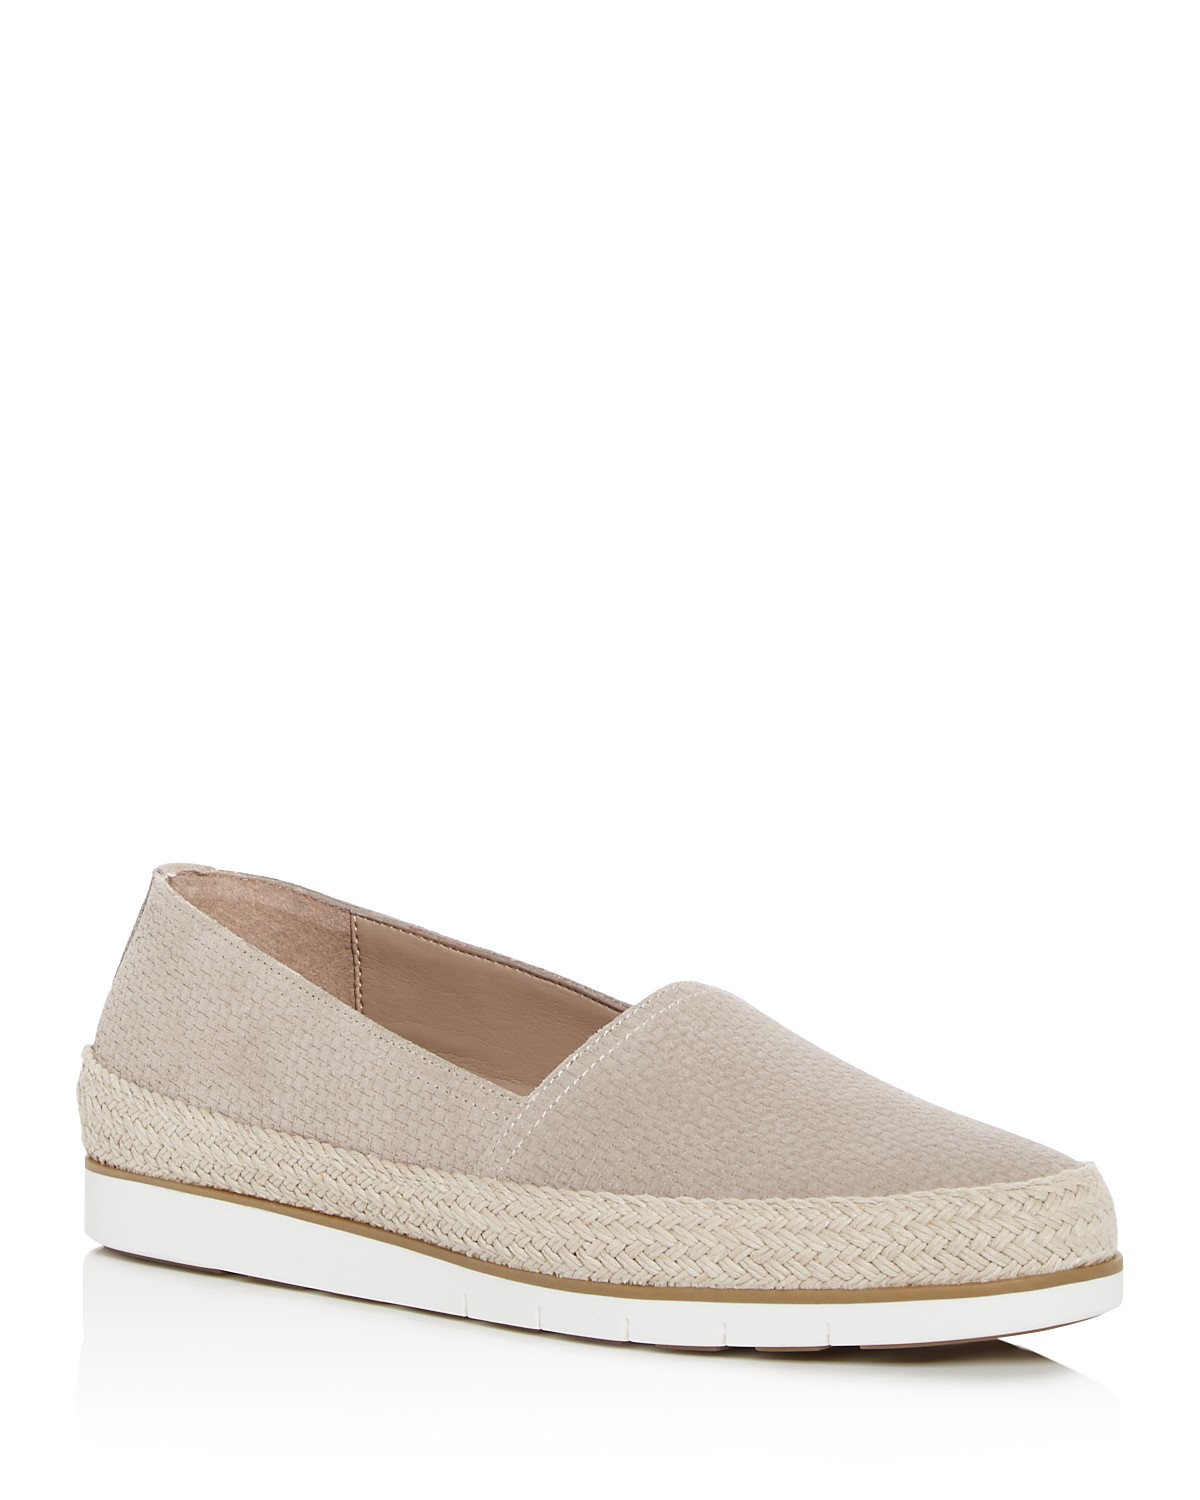 Palm Espadrille Embossed Suede Loafers TrkLMi